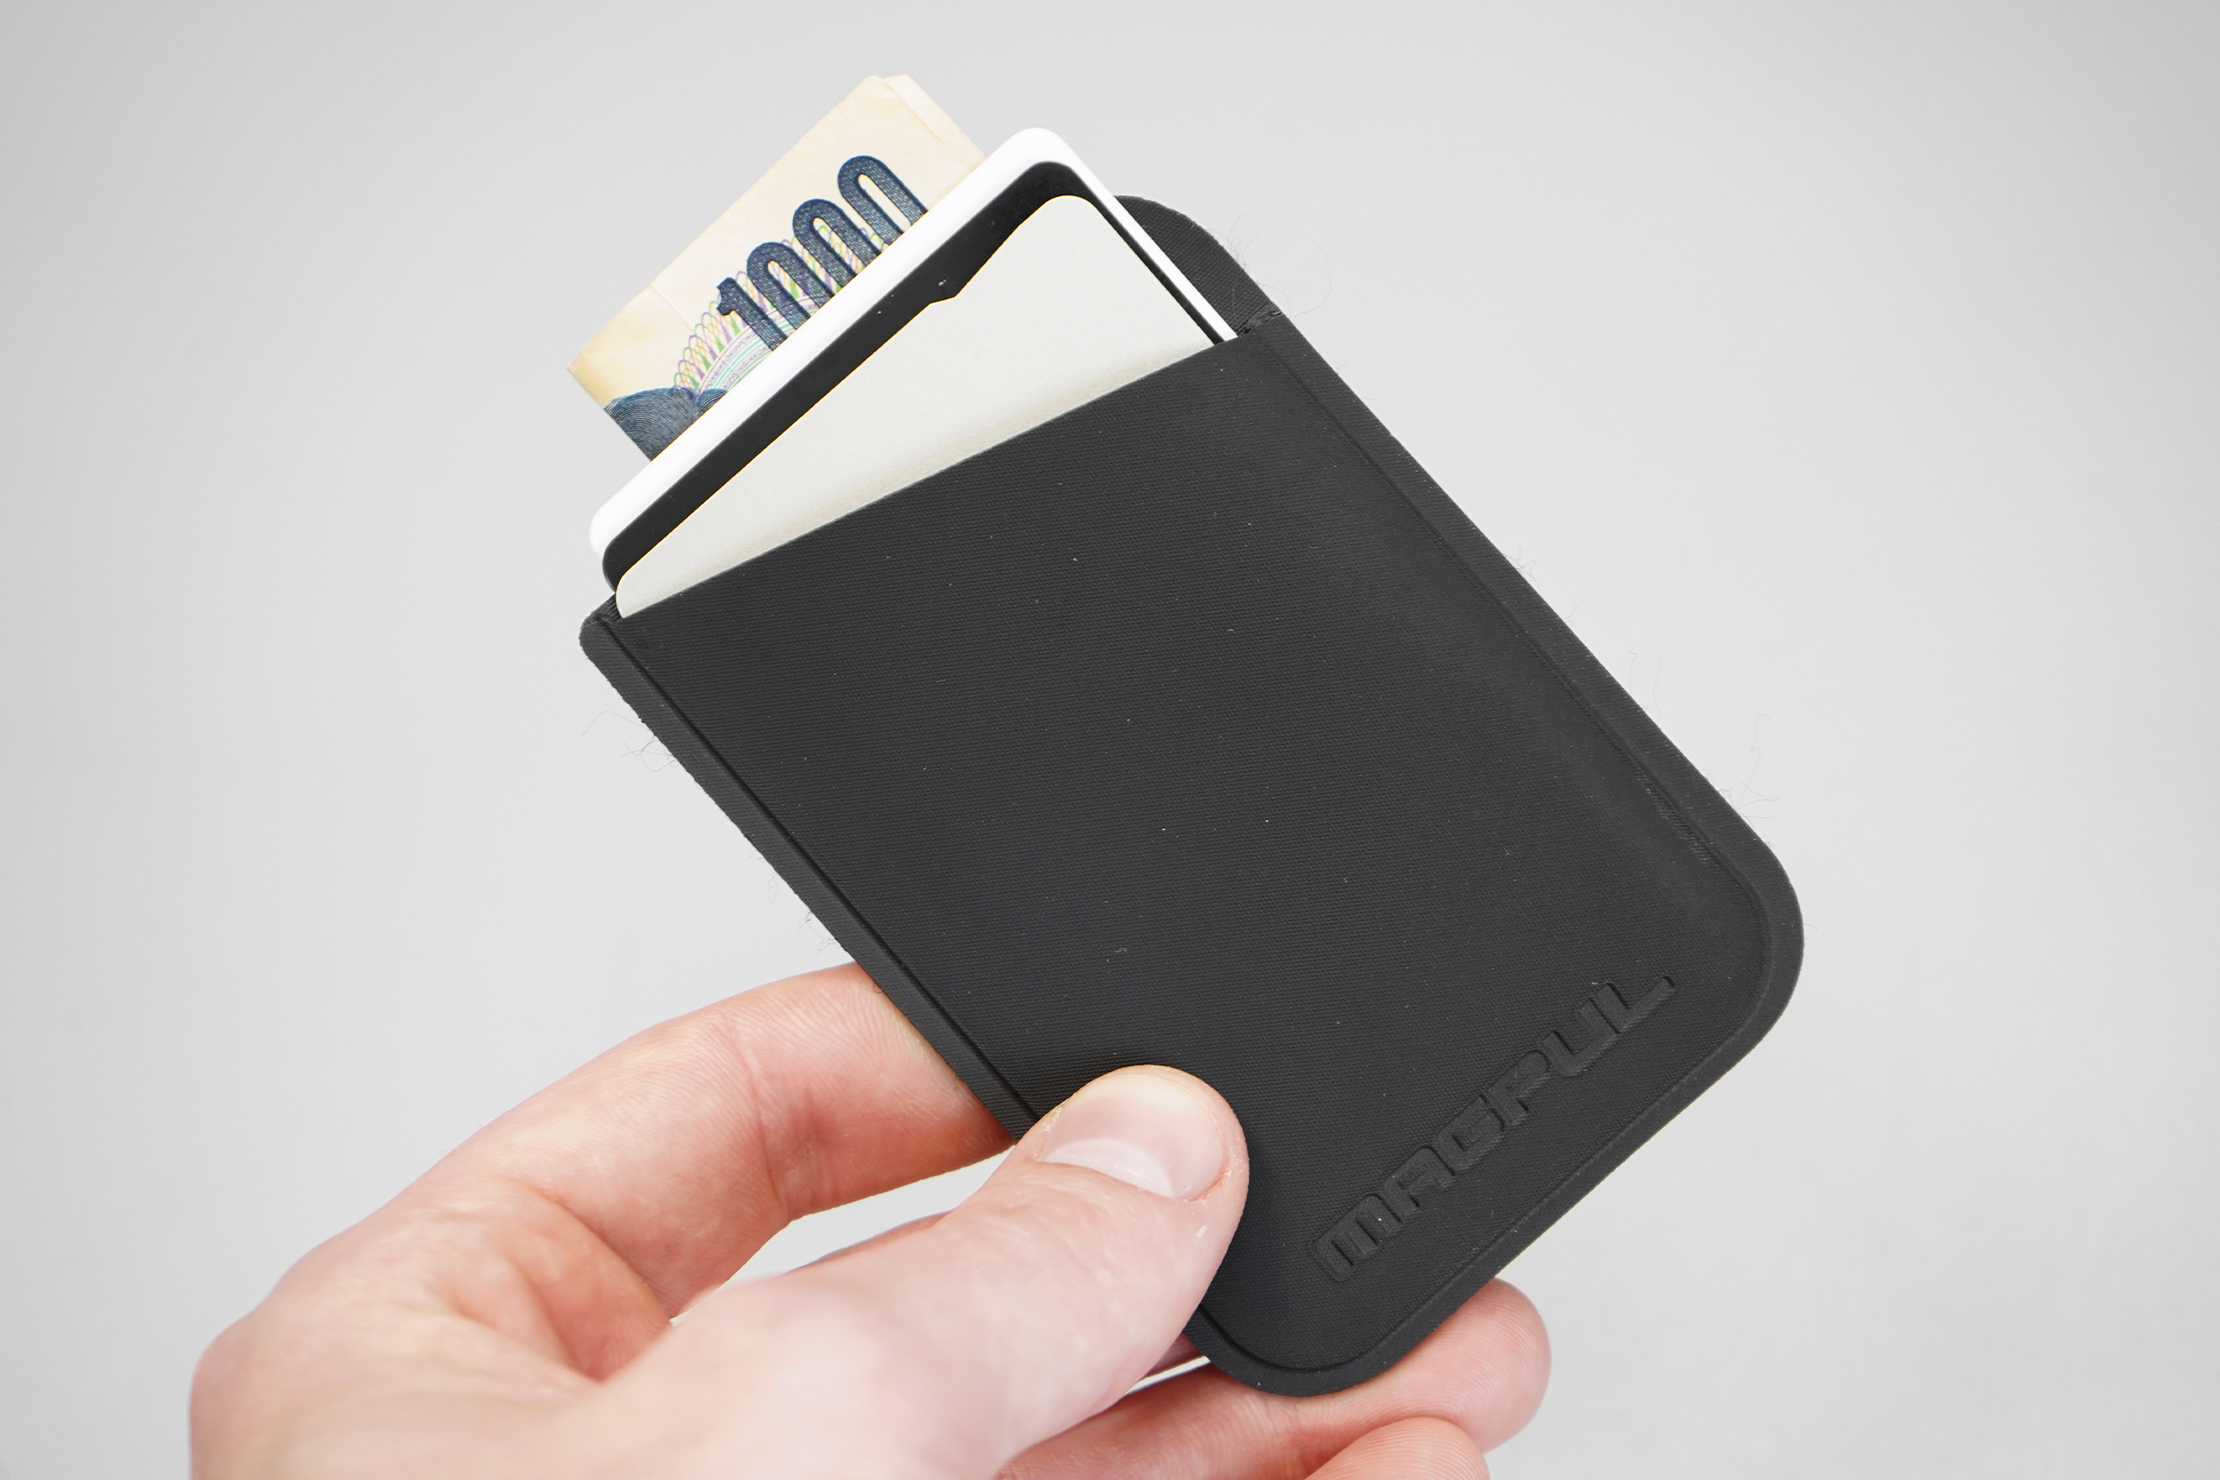 Magpul DAKA Micro Wallet   The ideal loadout: three cards and some cash.